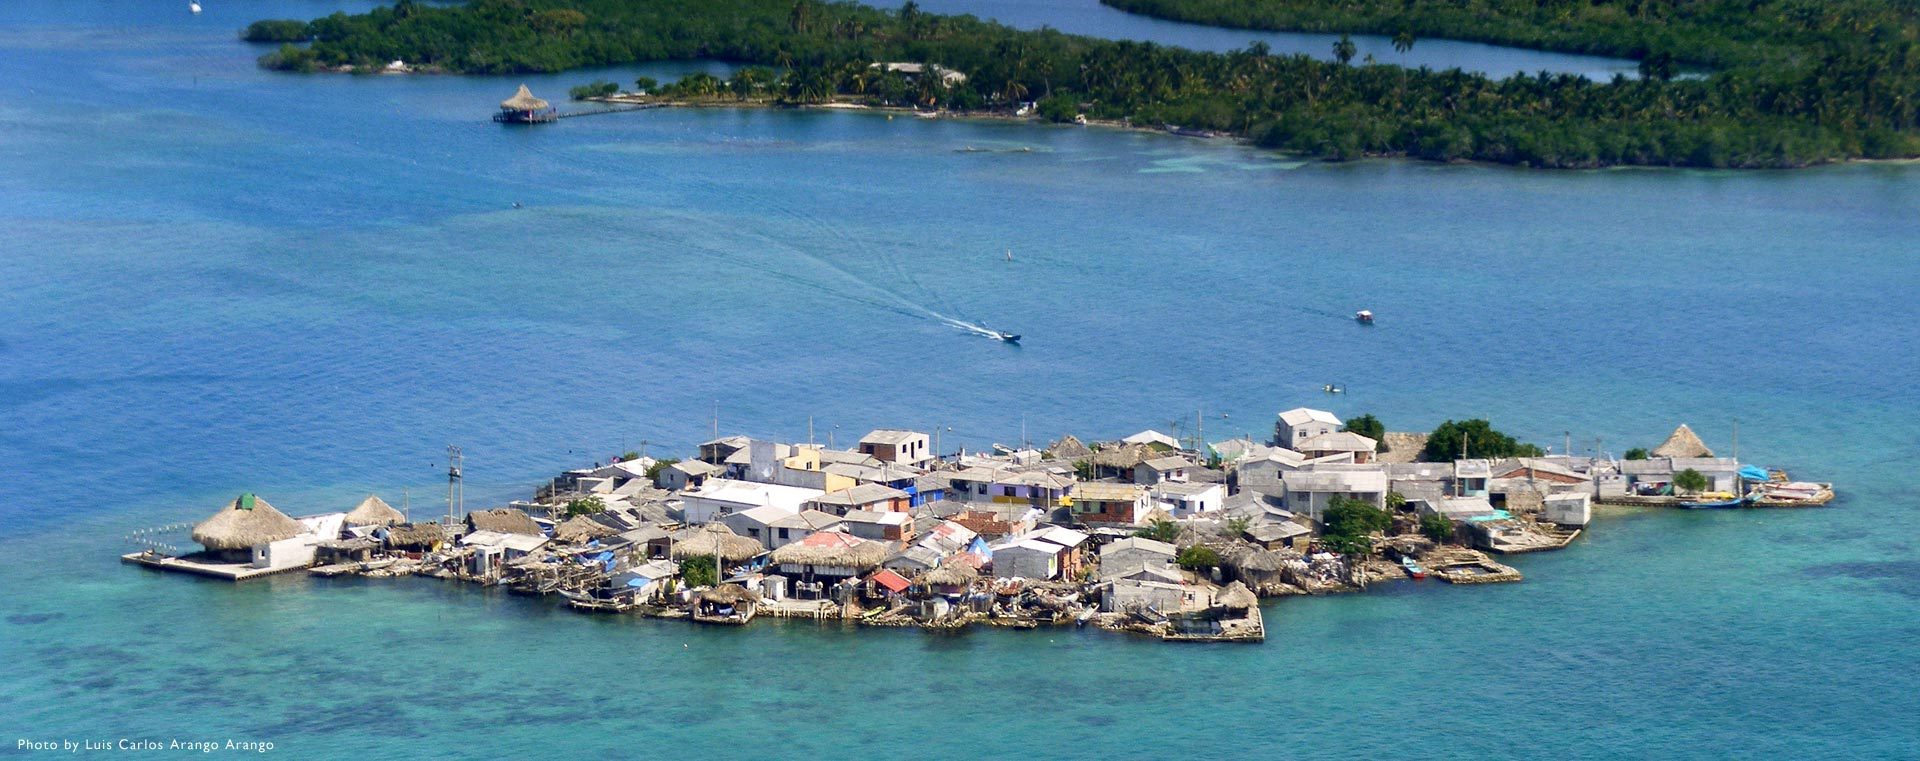 Aerial of the island of Santa Cruz del Islote